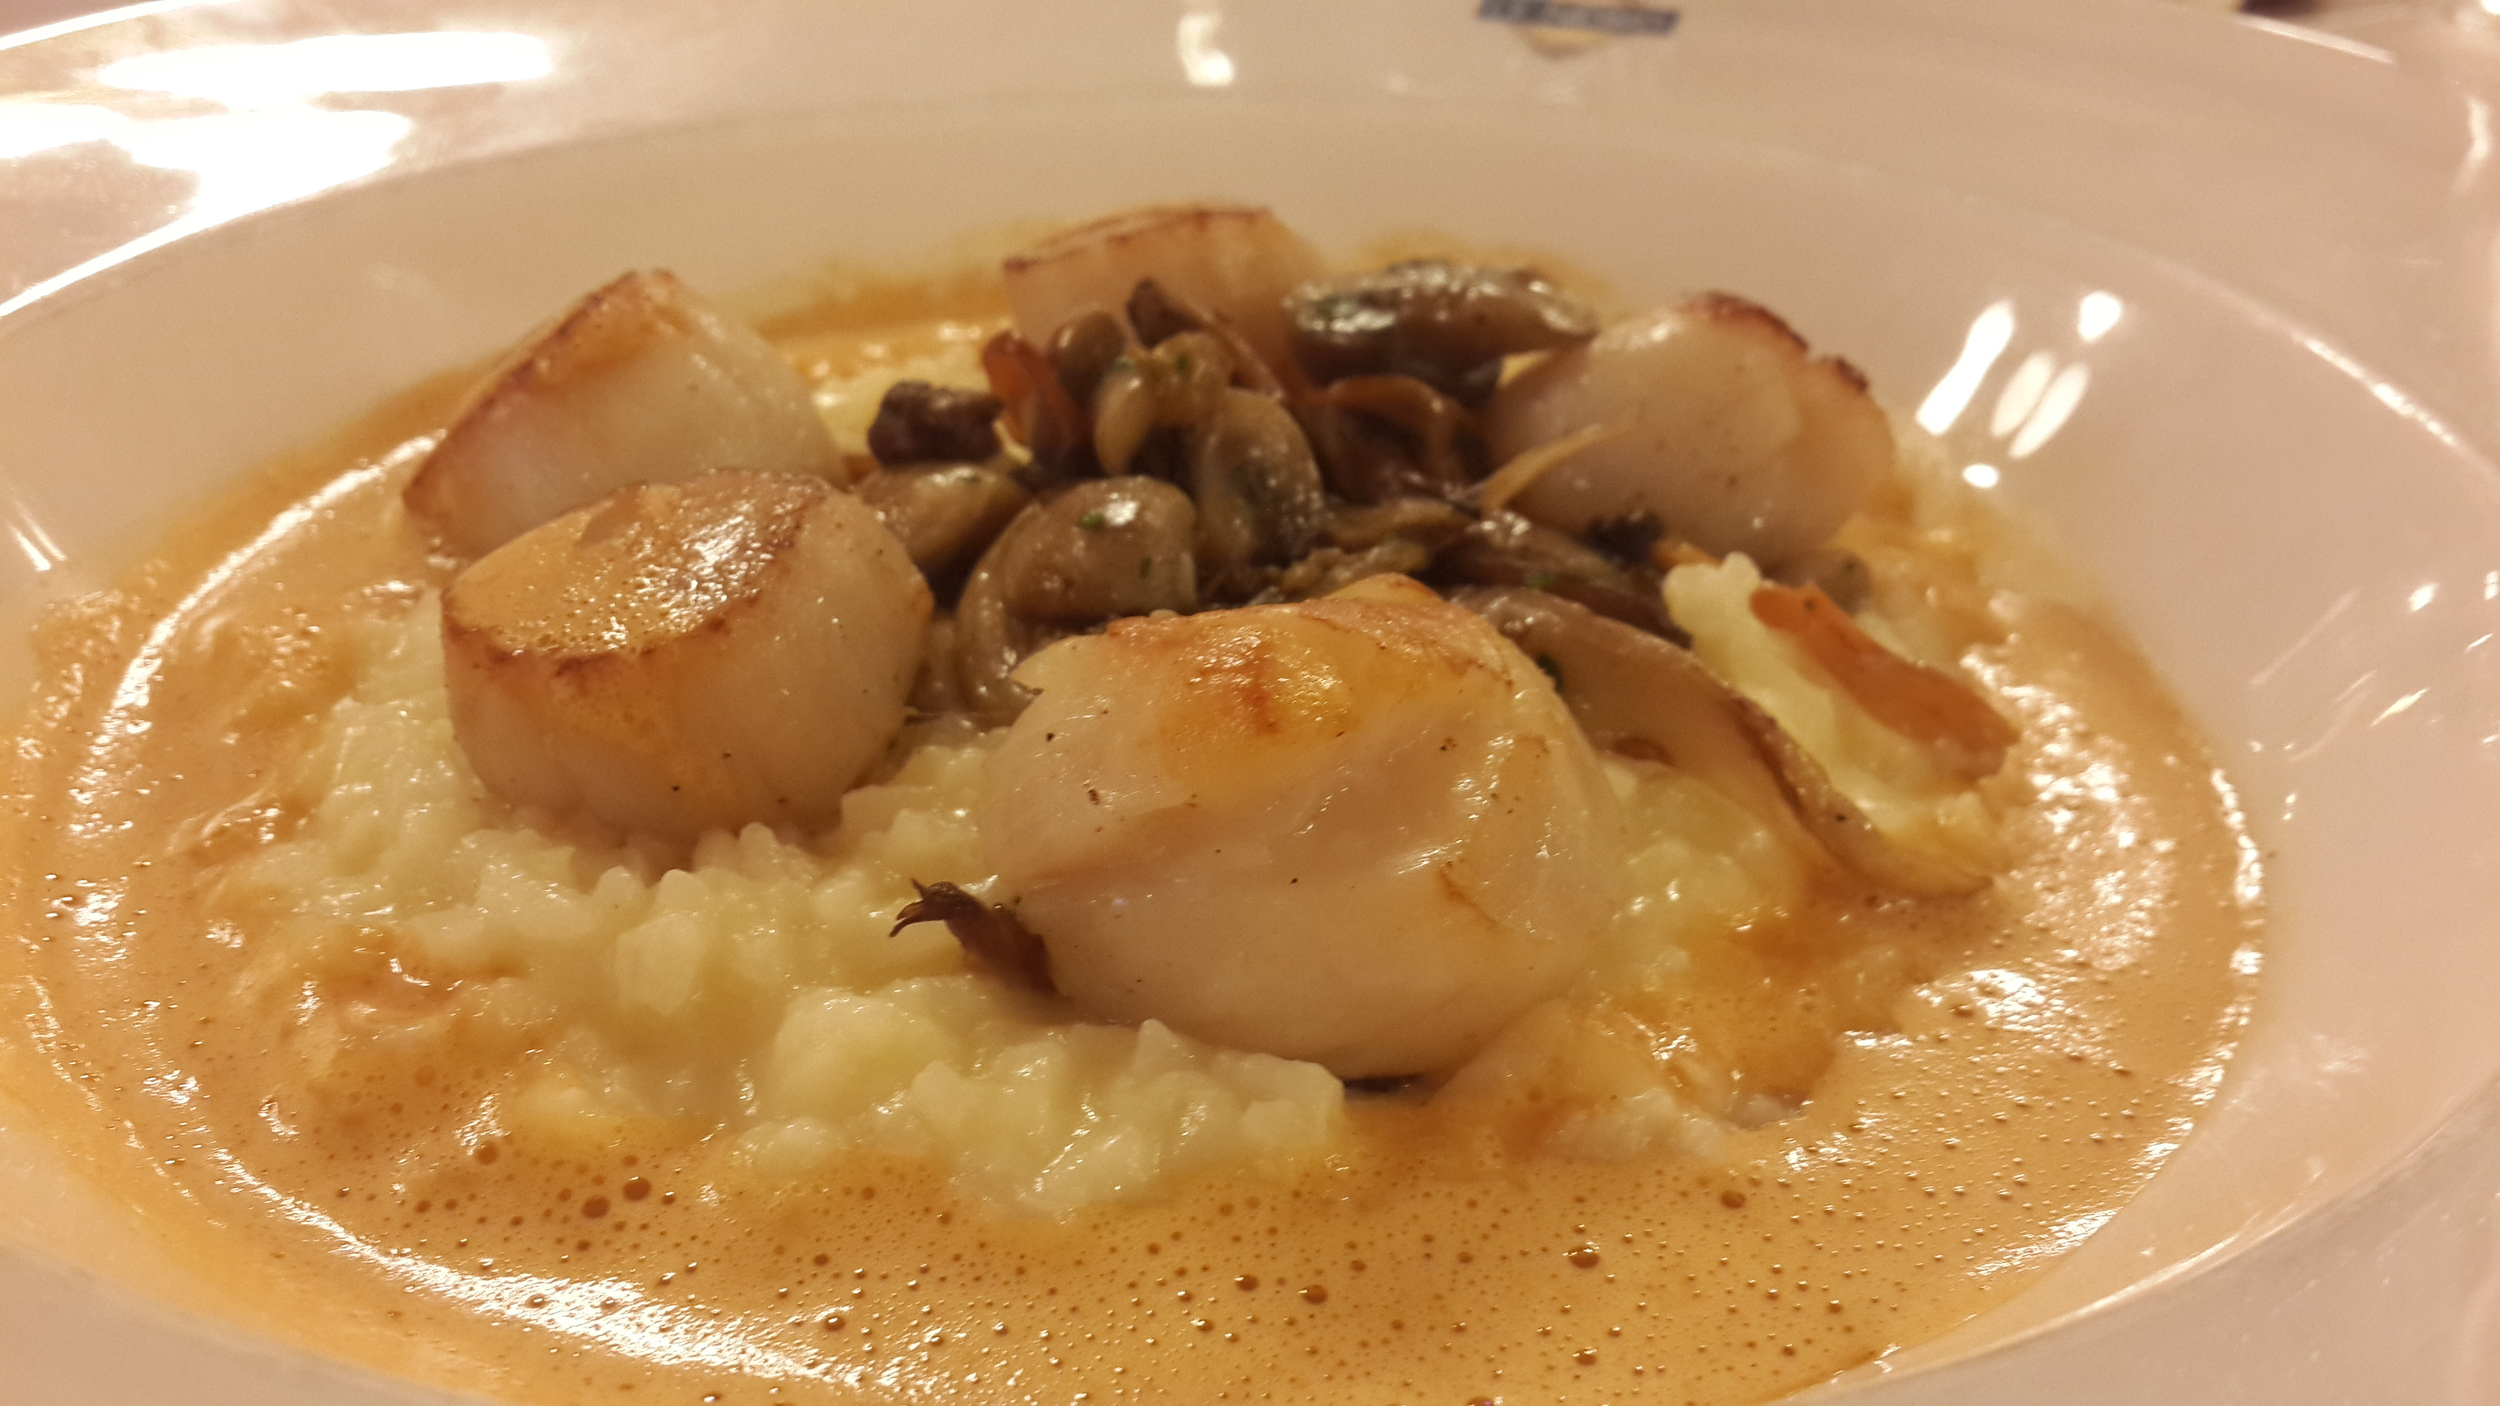 Scallop risotto with mushrooms @ Le Nord